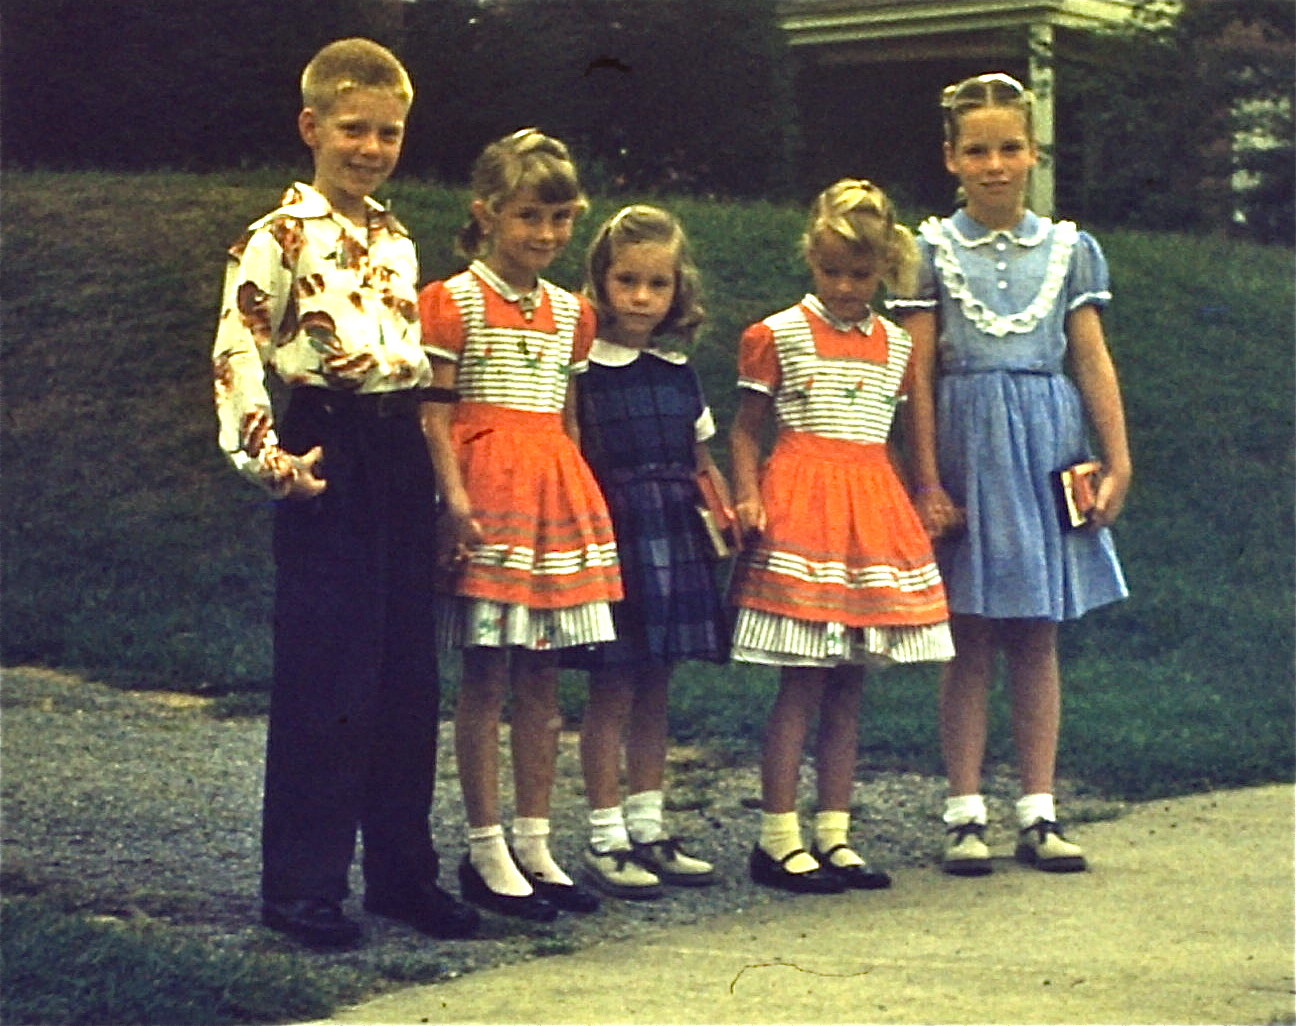 1950s Retrospective On Childrens Fashions Petticoats And Mary Janes